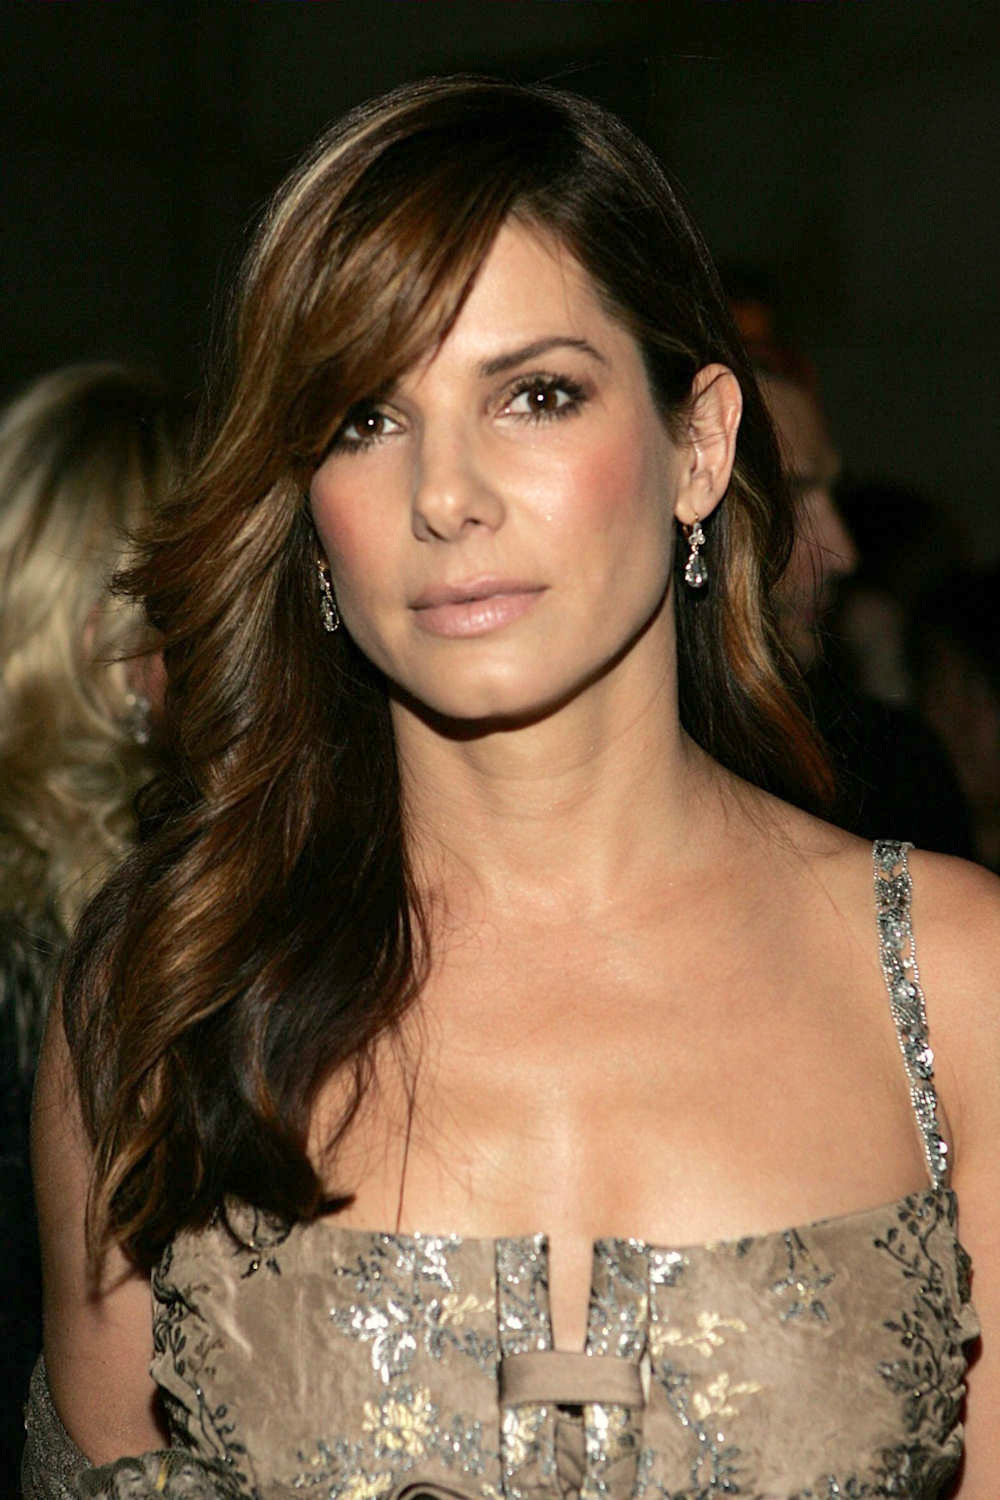 New Hairstyles for 2018, Latest Haircuts Pictures for Photos of celebrity hairstyles